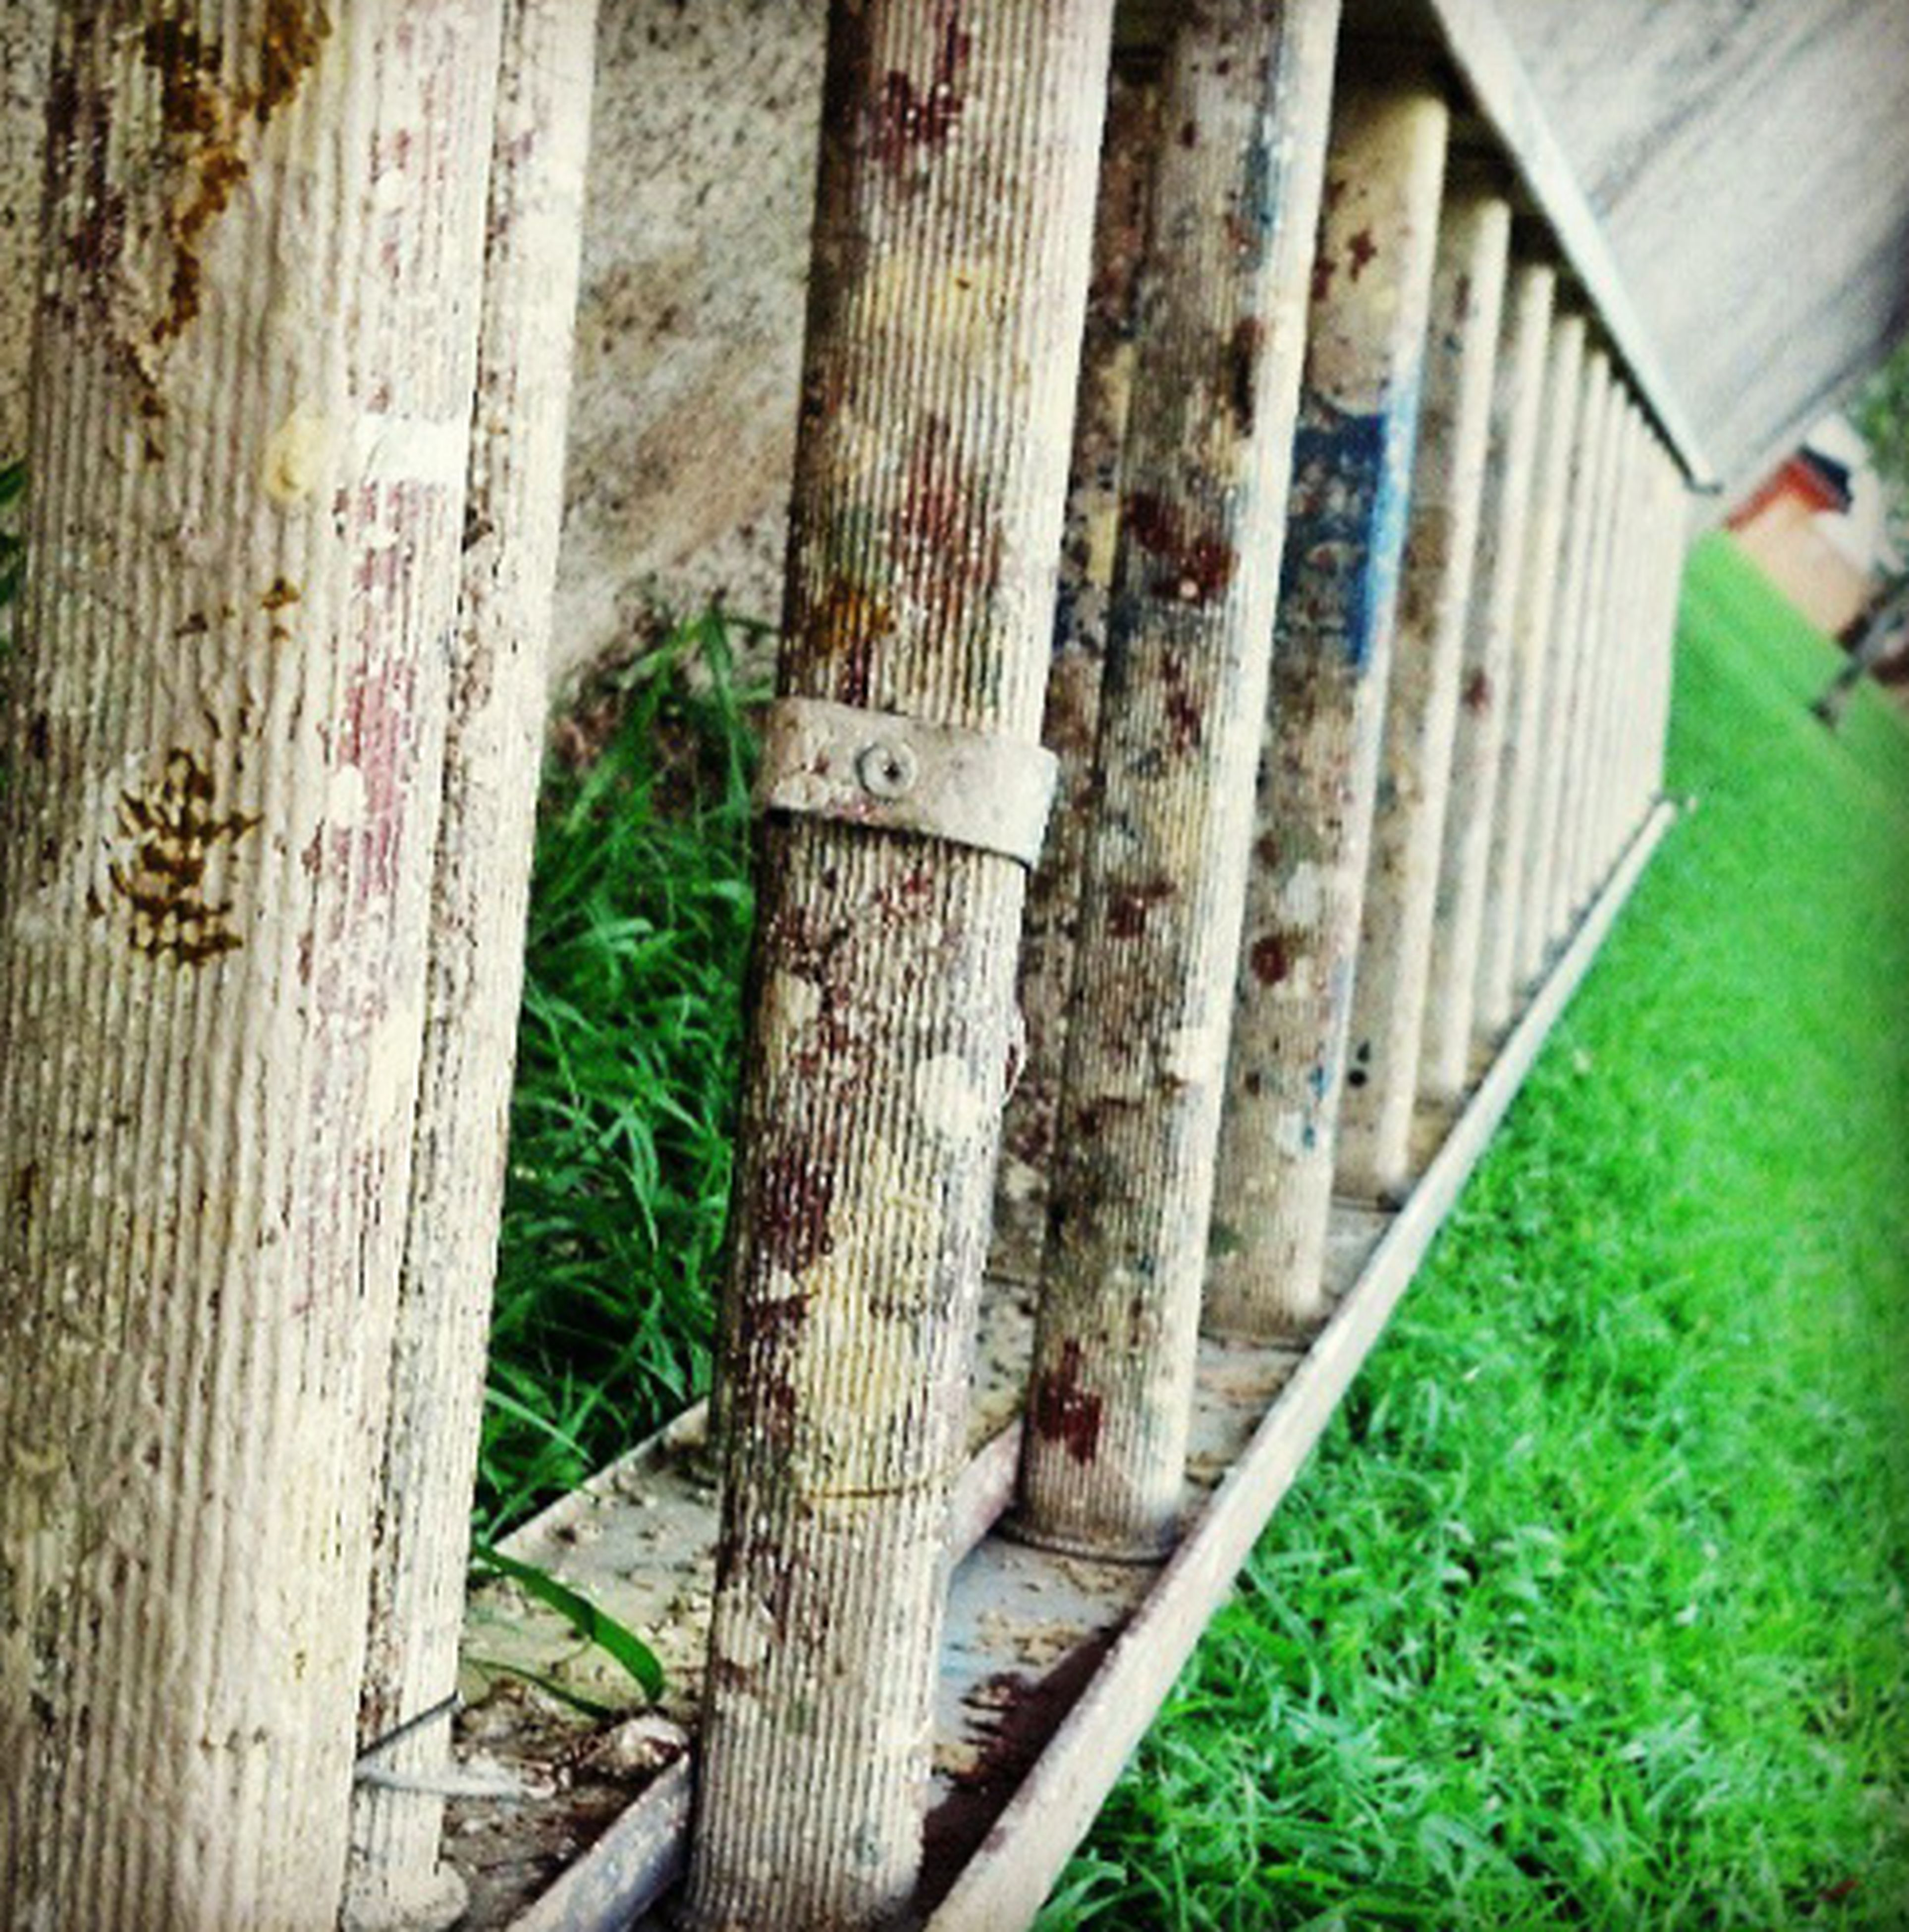 built structure, architecture, fence, wood - material, building exterior, protection, grass, safety, metal, wooden, day, outdoors, green color, security, no people, railing, animal themes, wall - building feature, one animal, plant